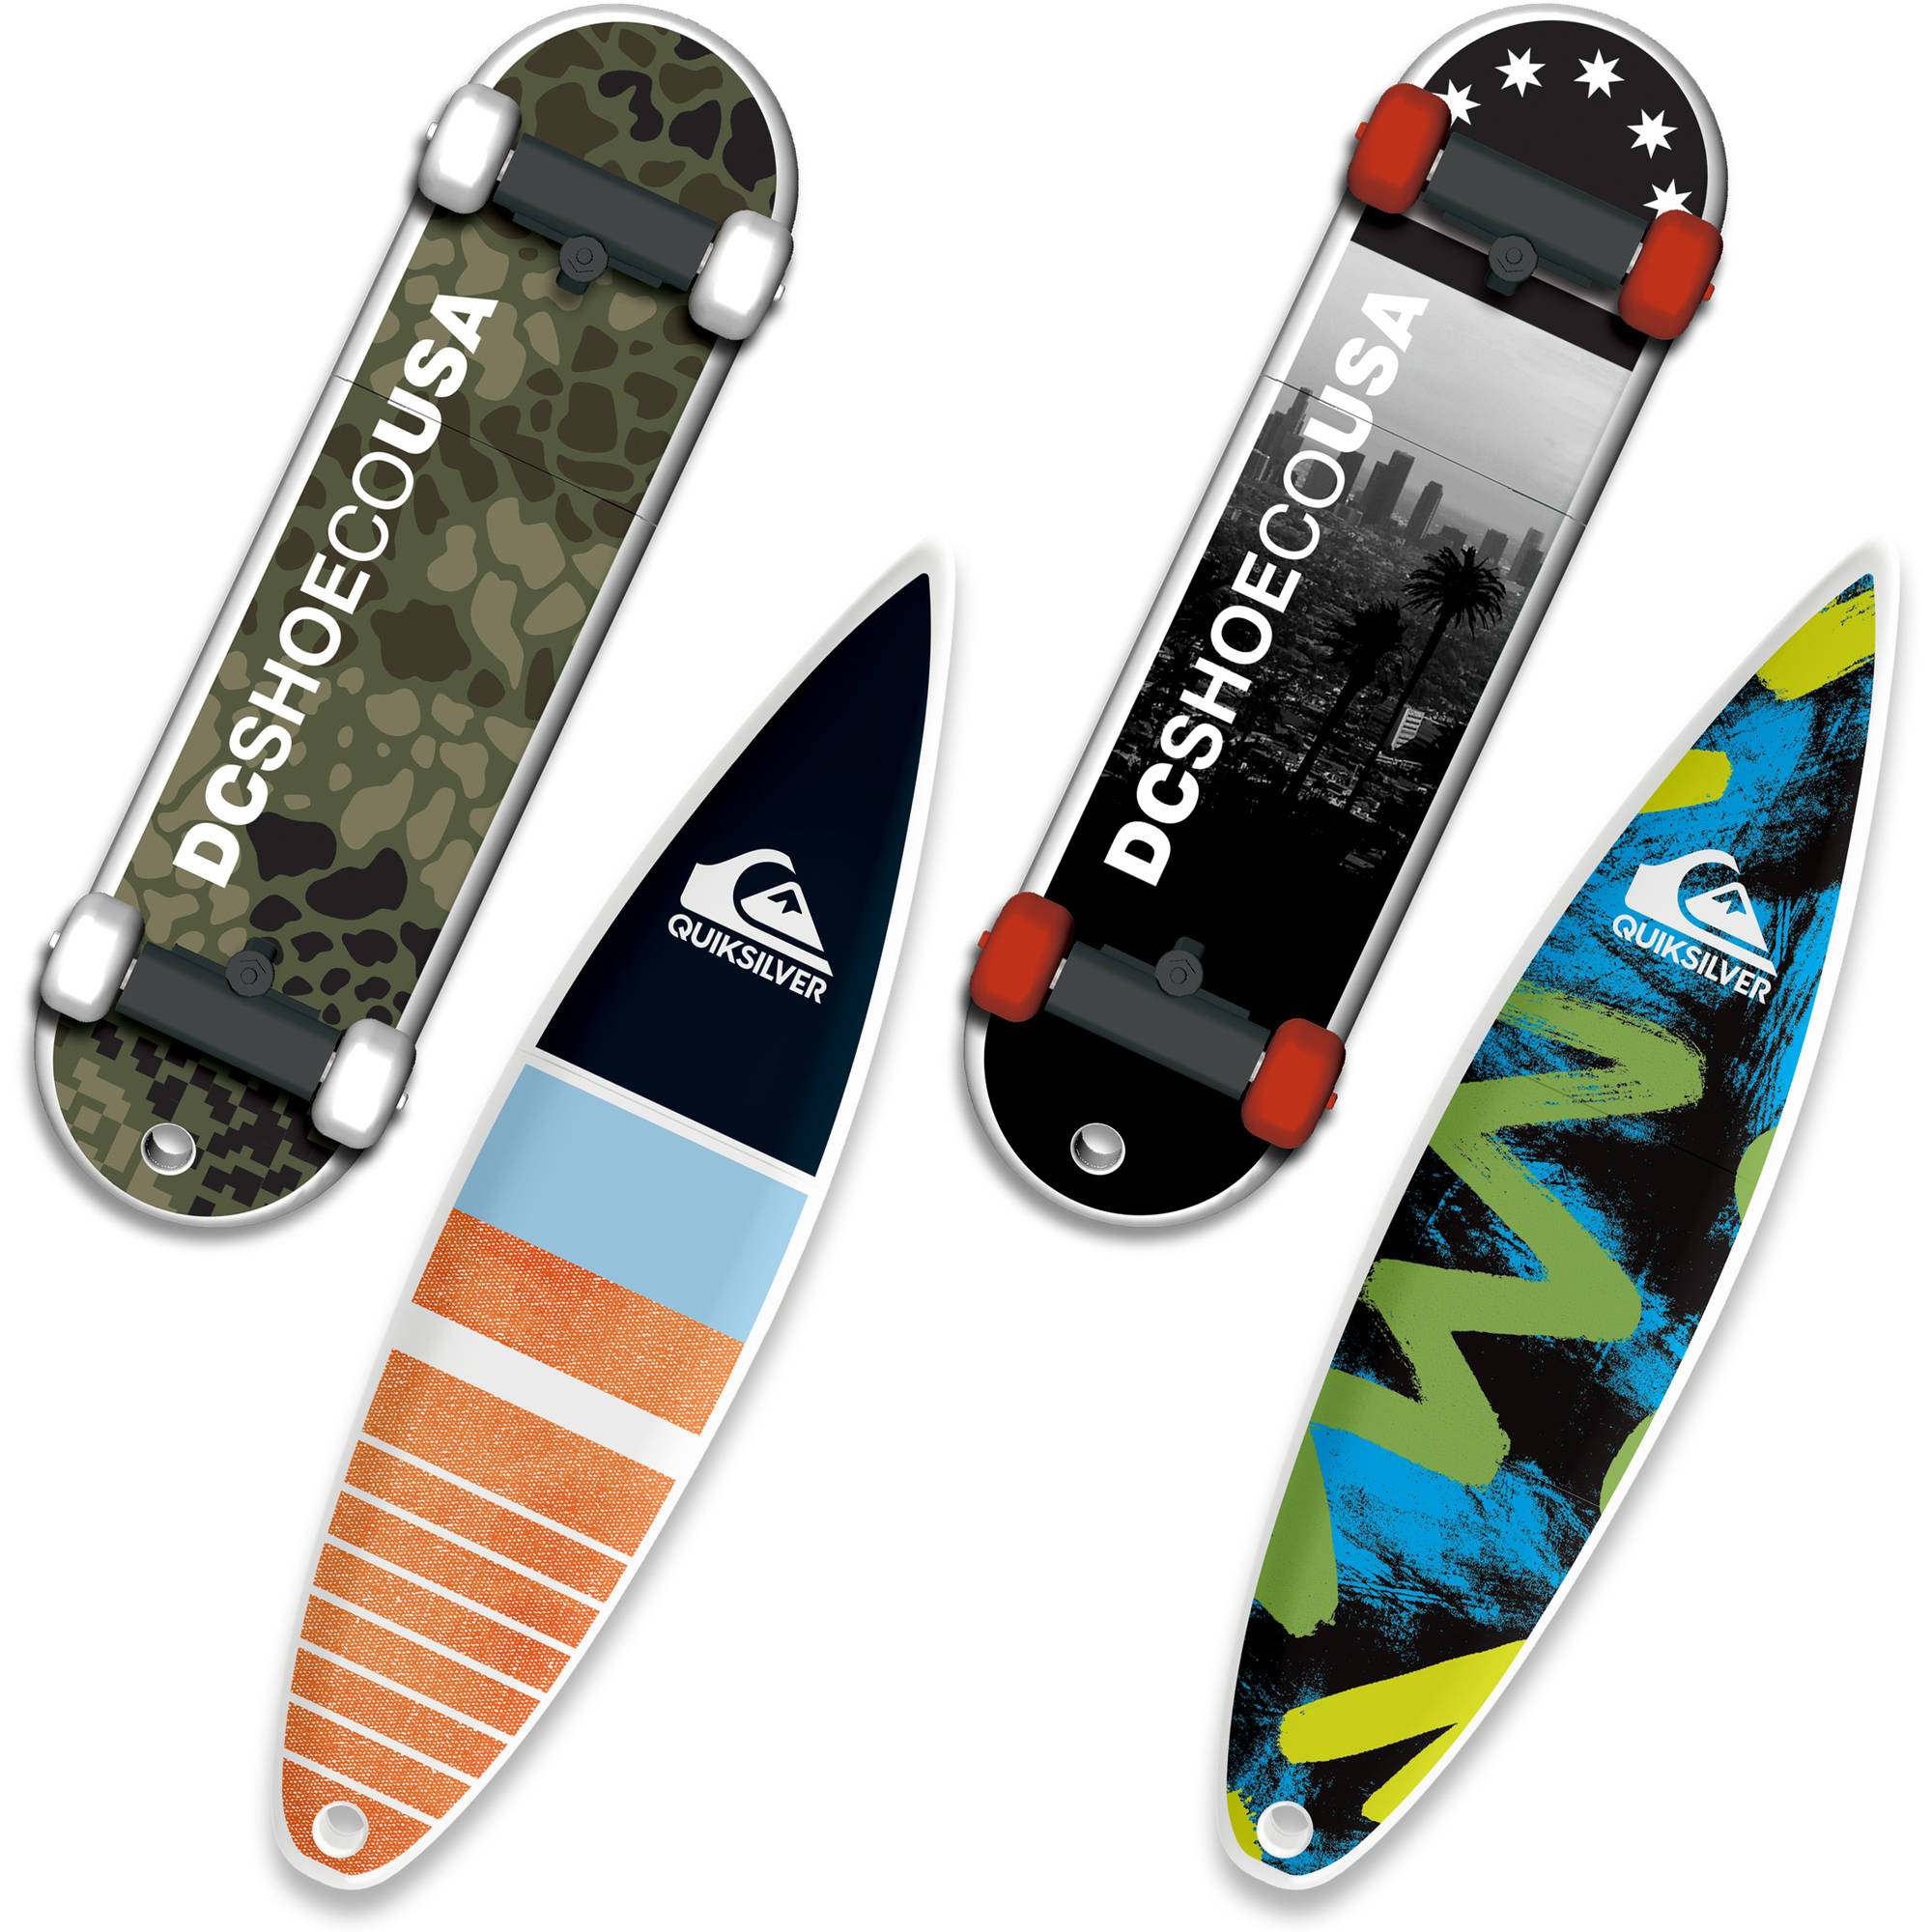 8GB EP ASD USB, DC Shoes SkateDrive and Quiksilver SurfDrive, 4-Pack